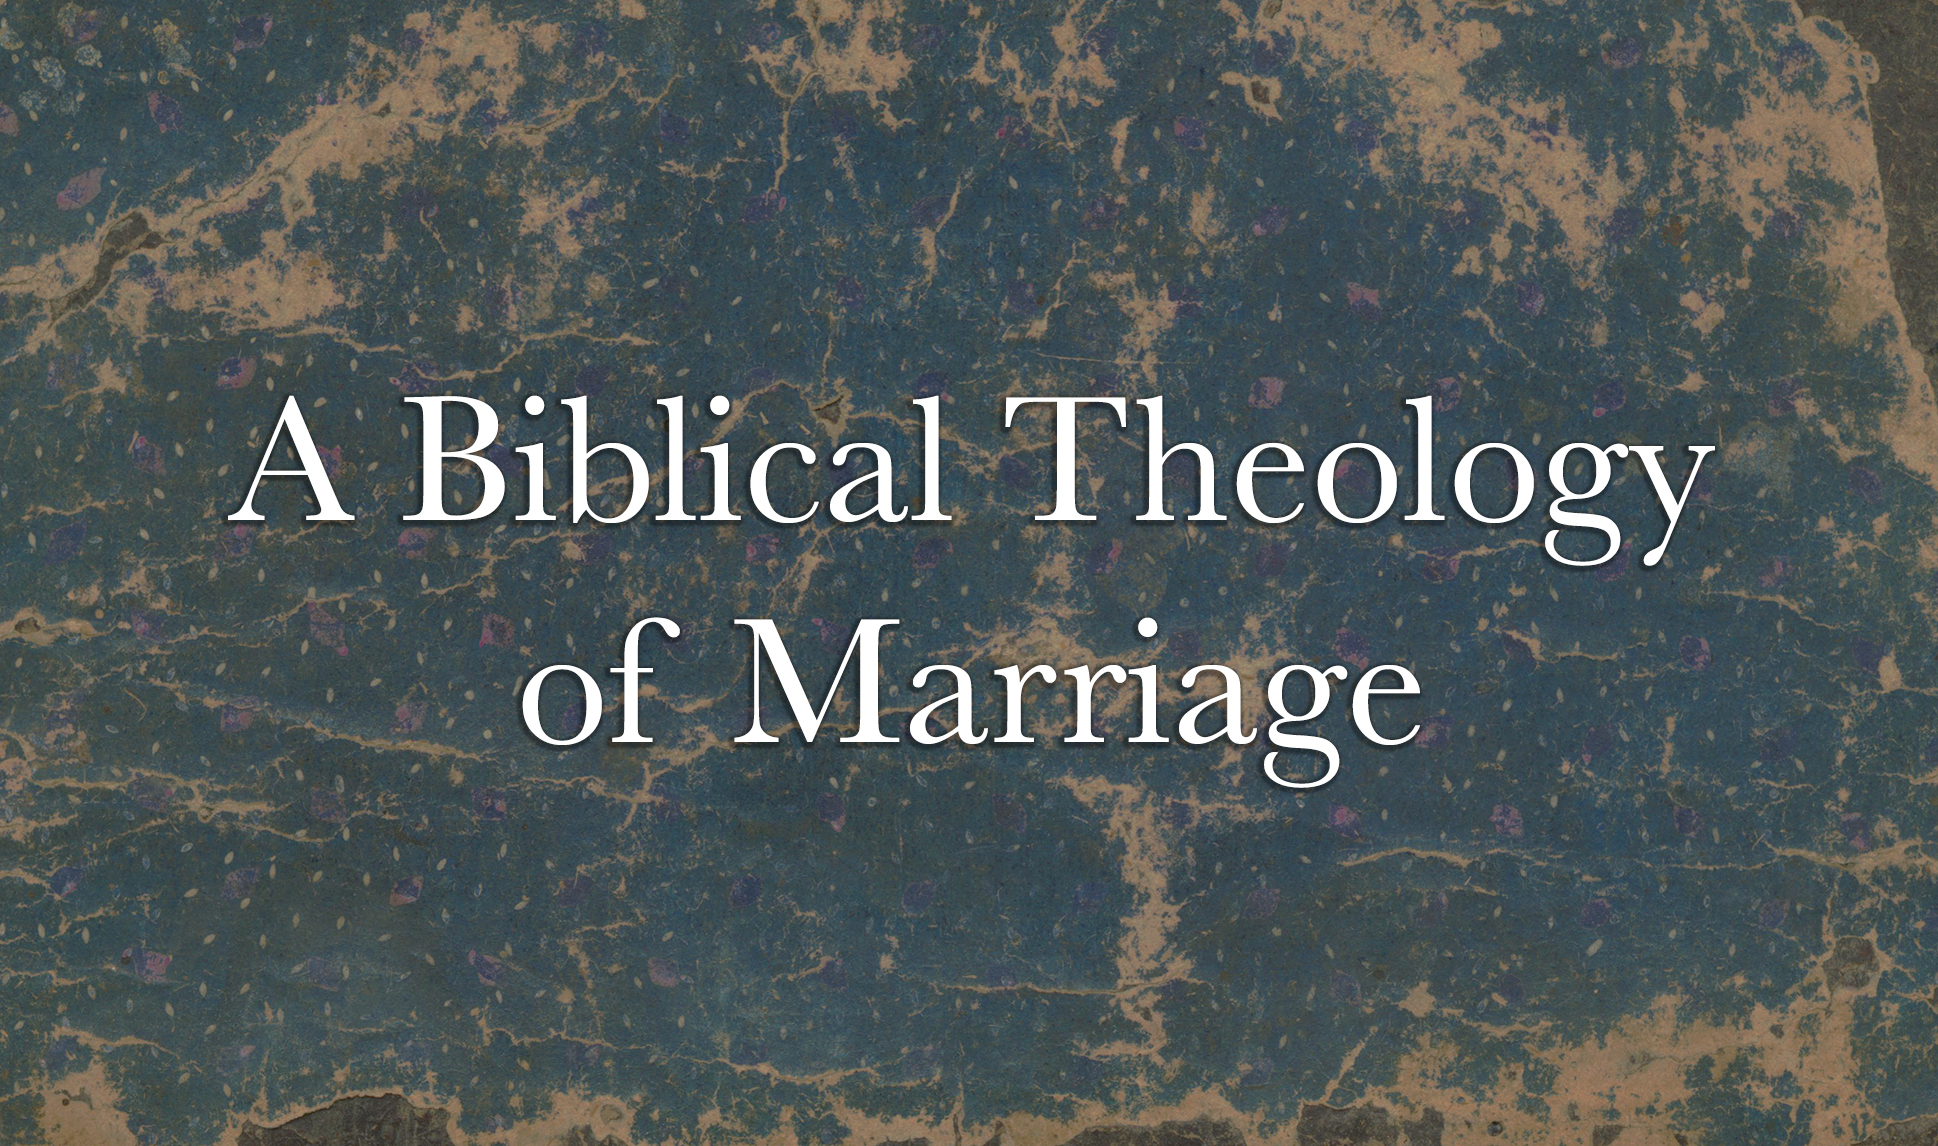 Biblical Theology of Marriage Slide_no date image